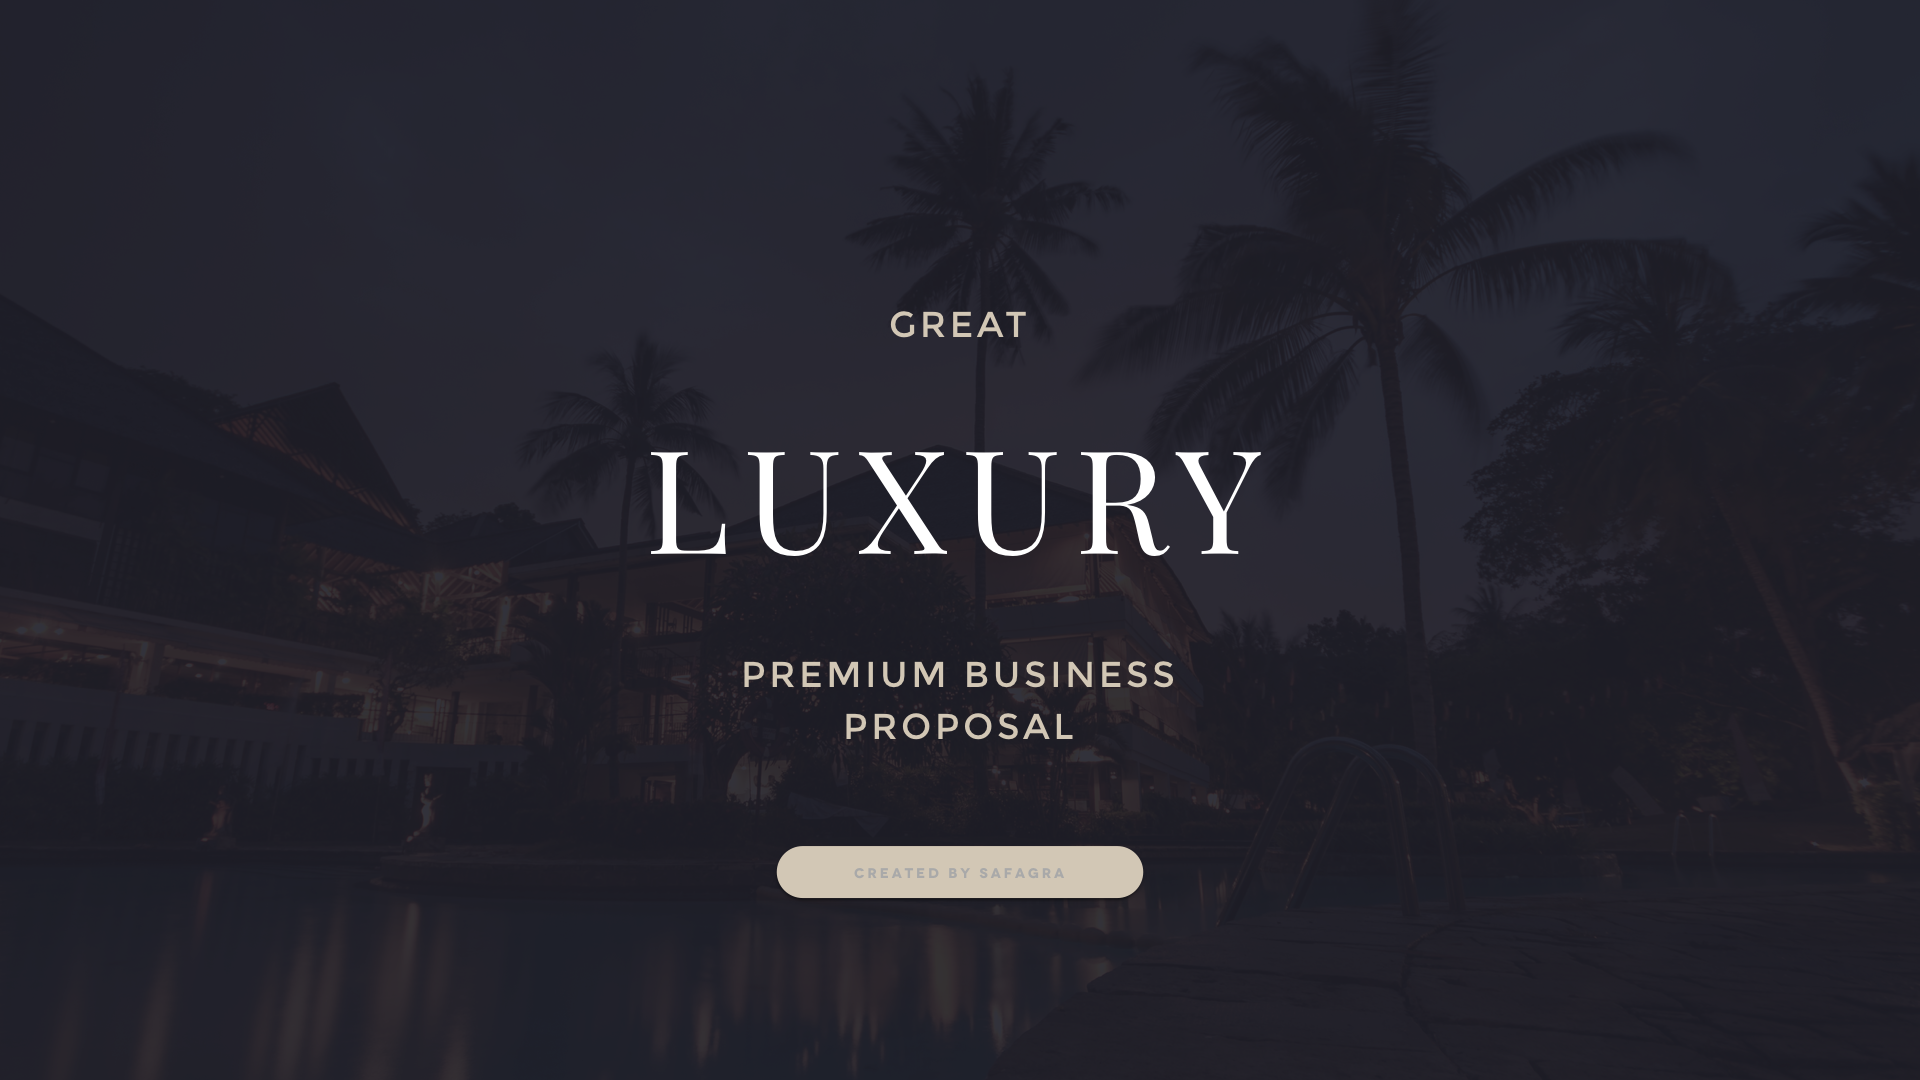 Great Luxury Premium Business Proposal - Keynote Template by safagra